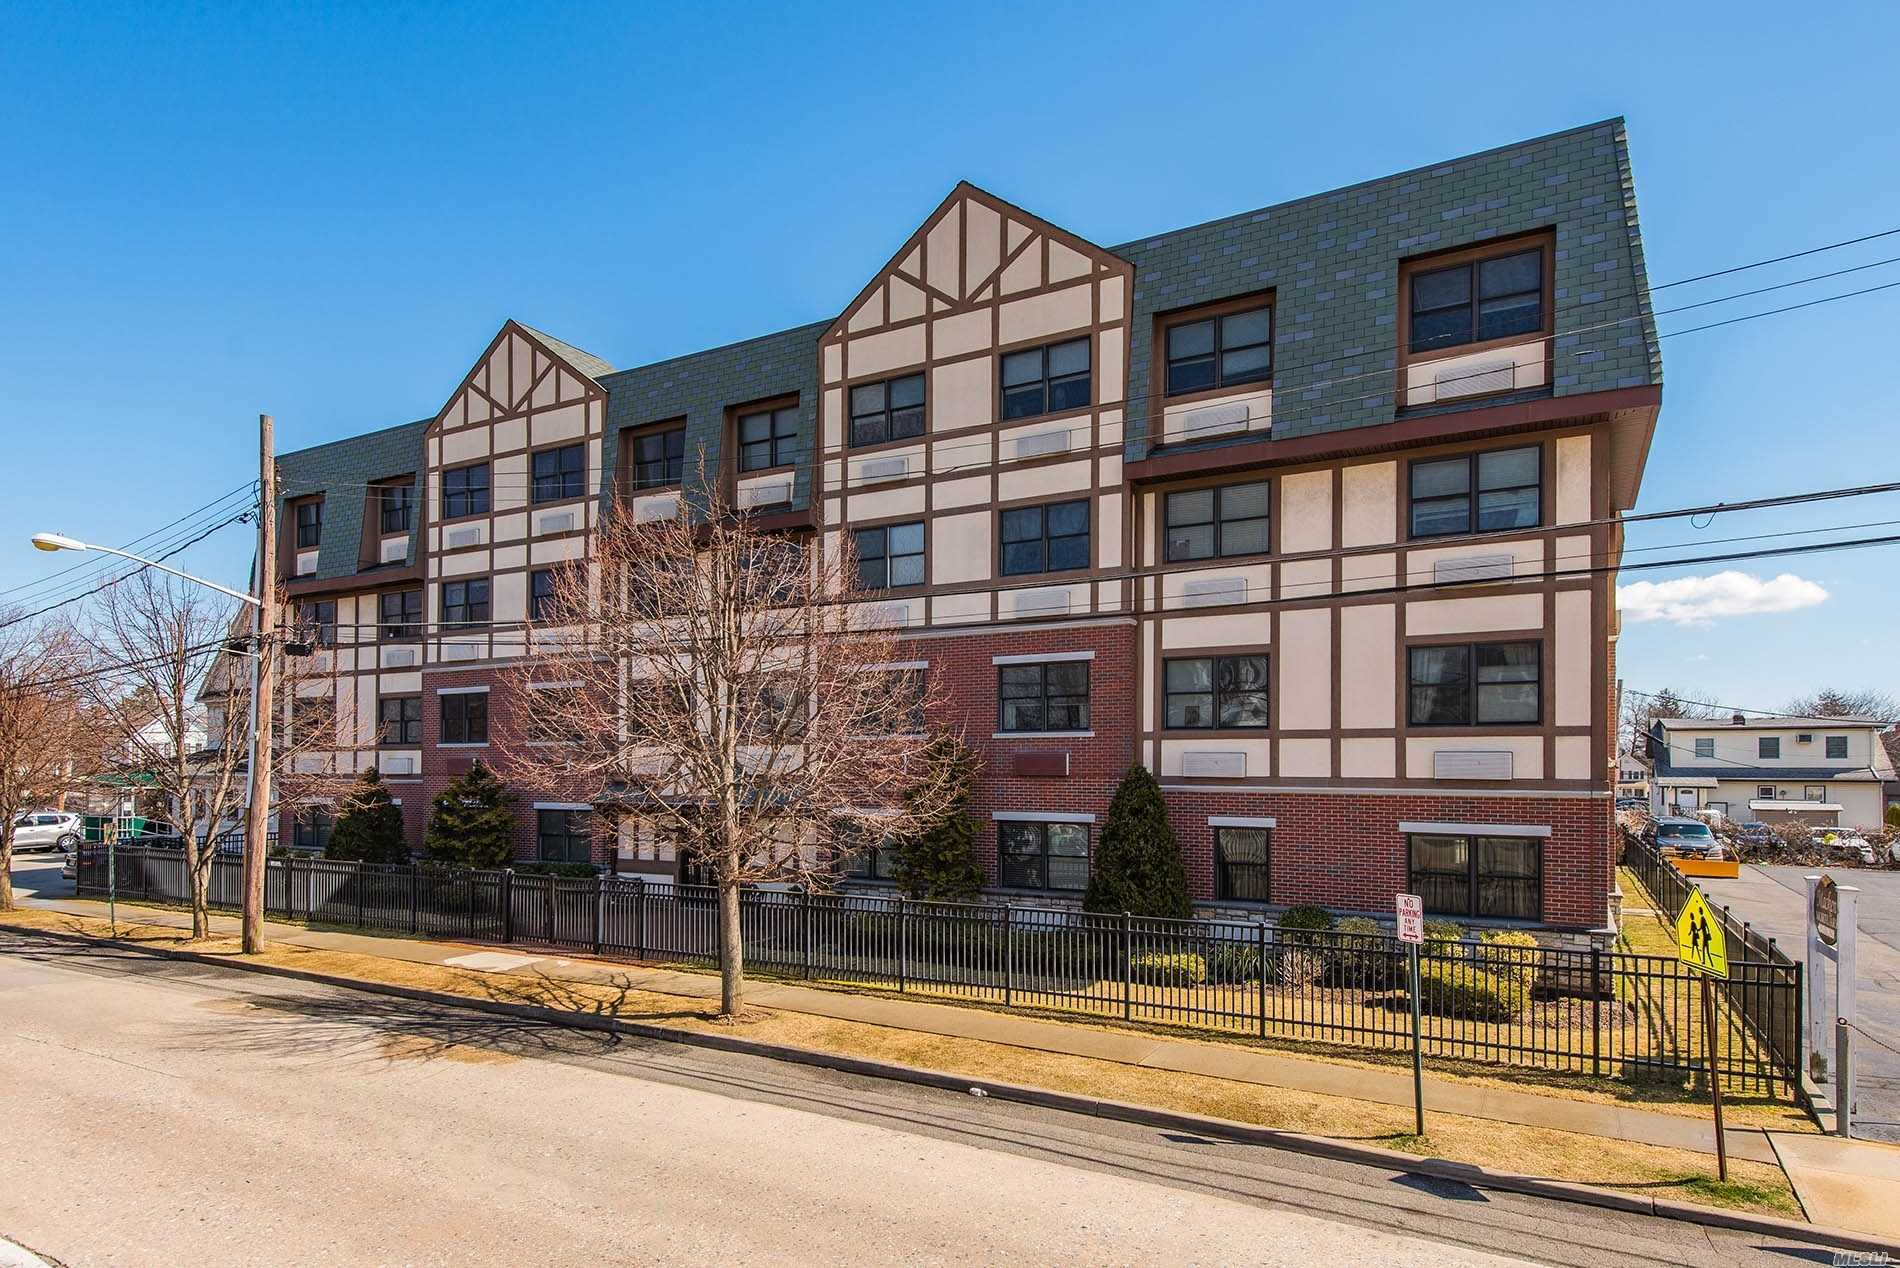 This 32 Unit Condo Building For 55+ is conveniently located near the Rockville Centre LIRR and the village with many restaurants and shops. This two Bedroom corner Unit W/ Washer/Dryer has 1.5 baths.  Each condo comes with an 8 X 10 storage unit in the basement. The building also has a large community/club room for the residents use.